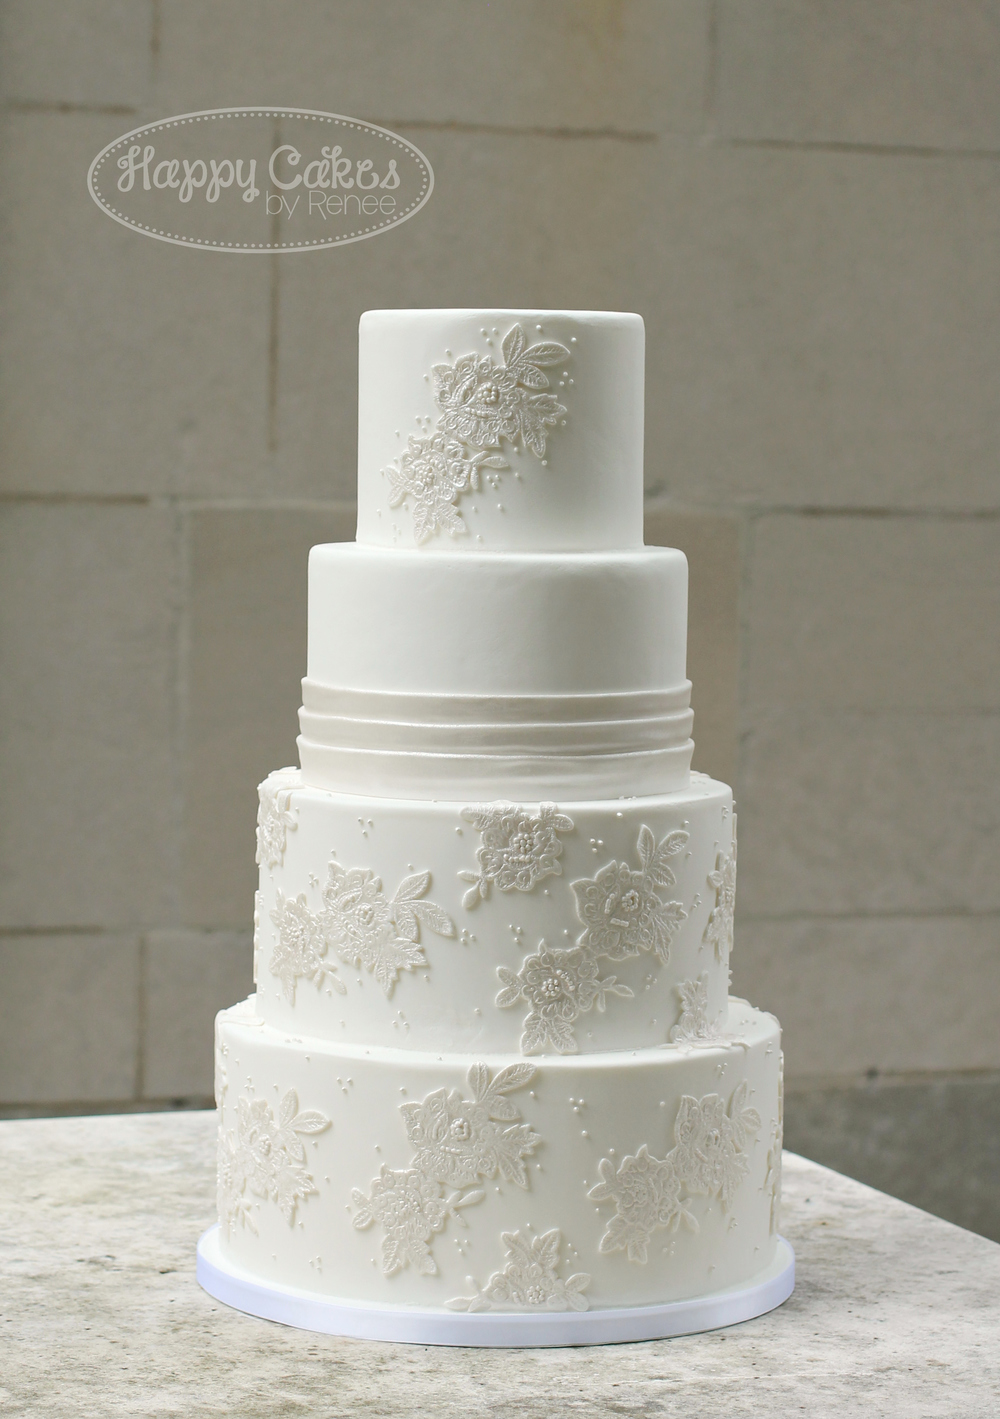 Lace Applique Cake 8W.jpg